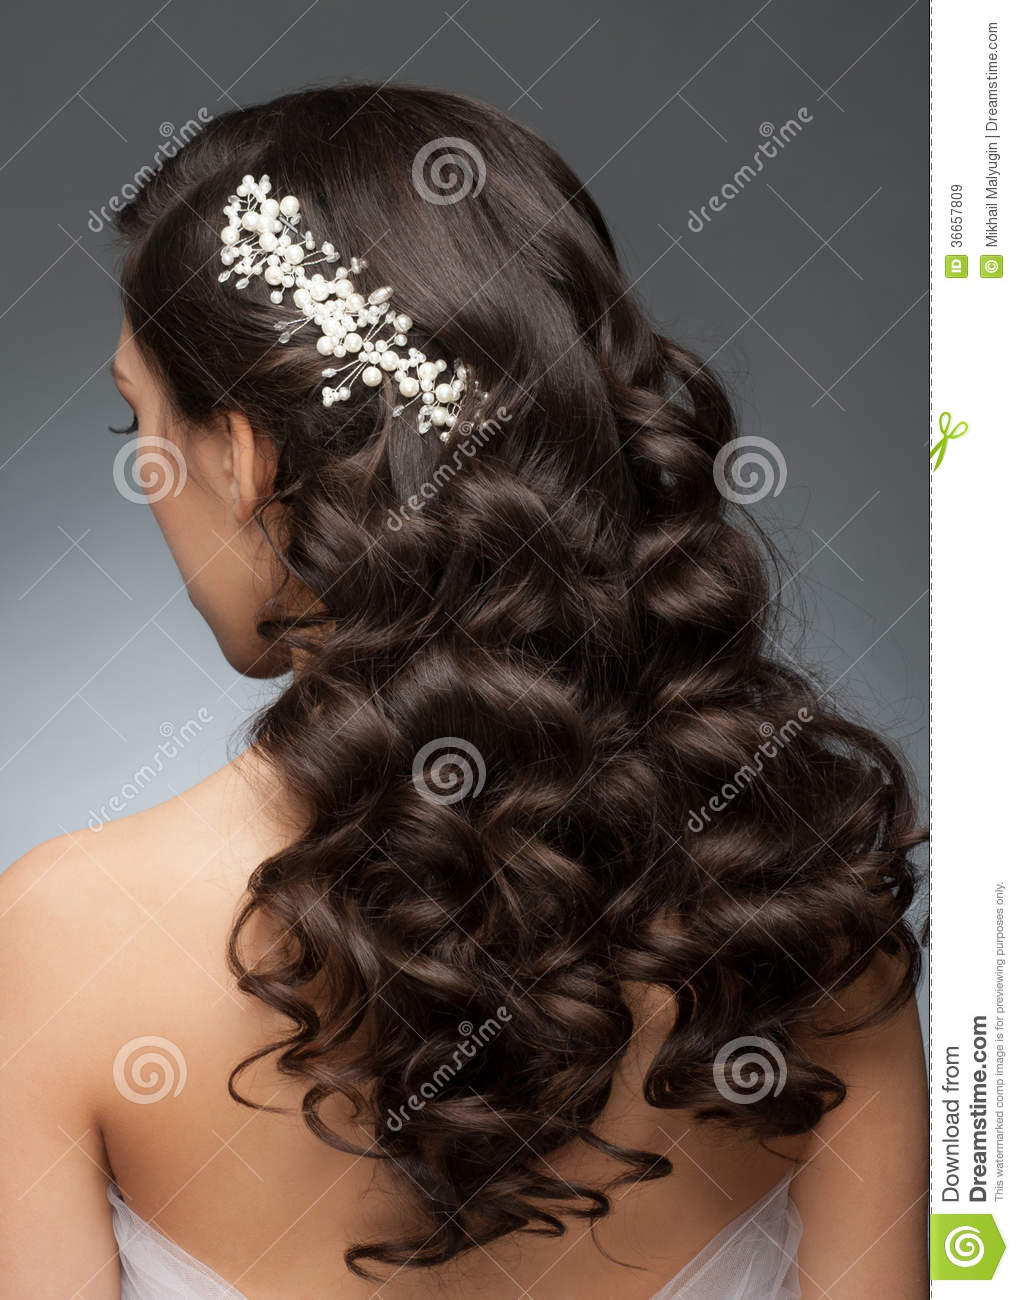 bridal hairstyle royalty free stock images - image: 36657809